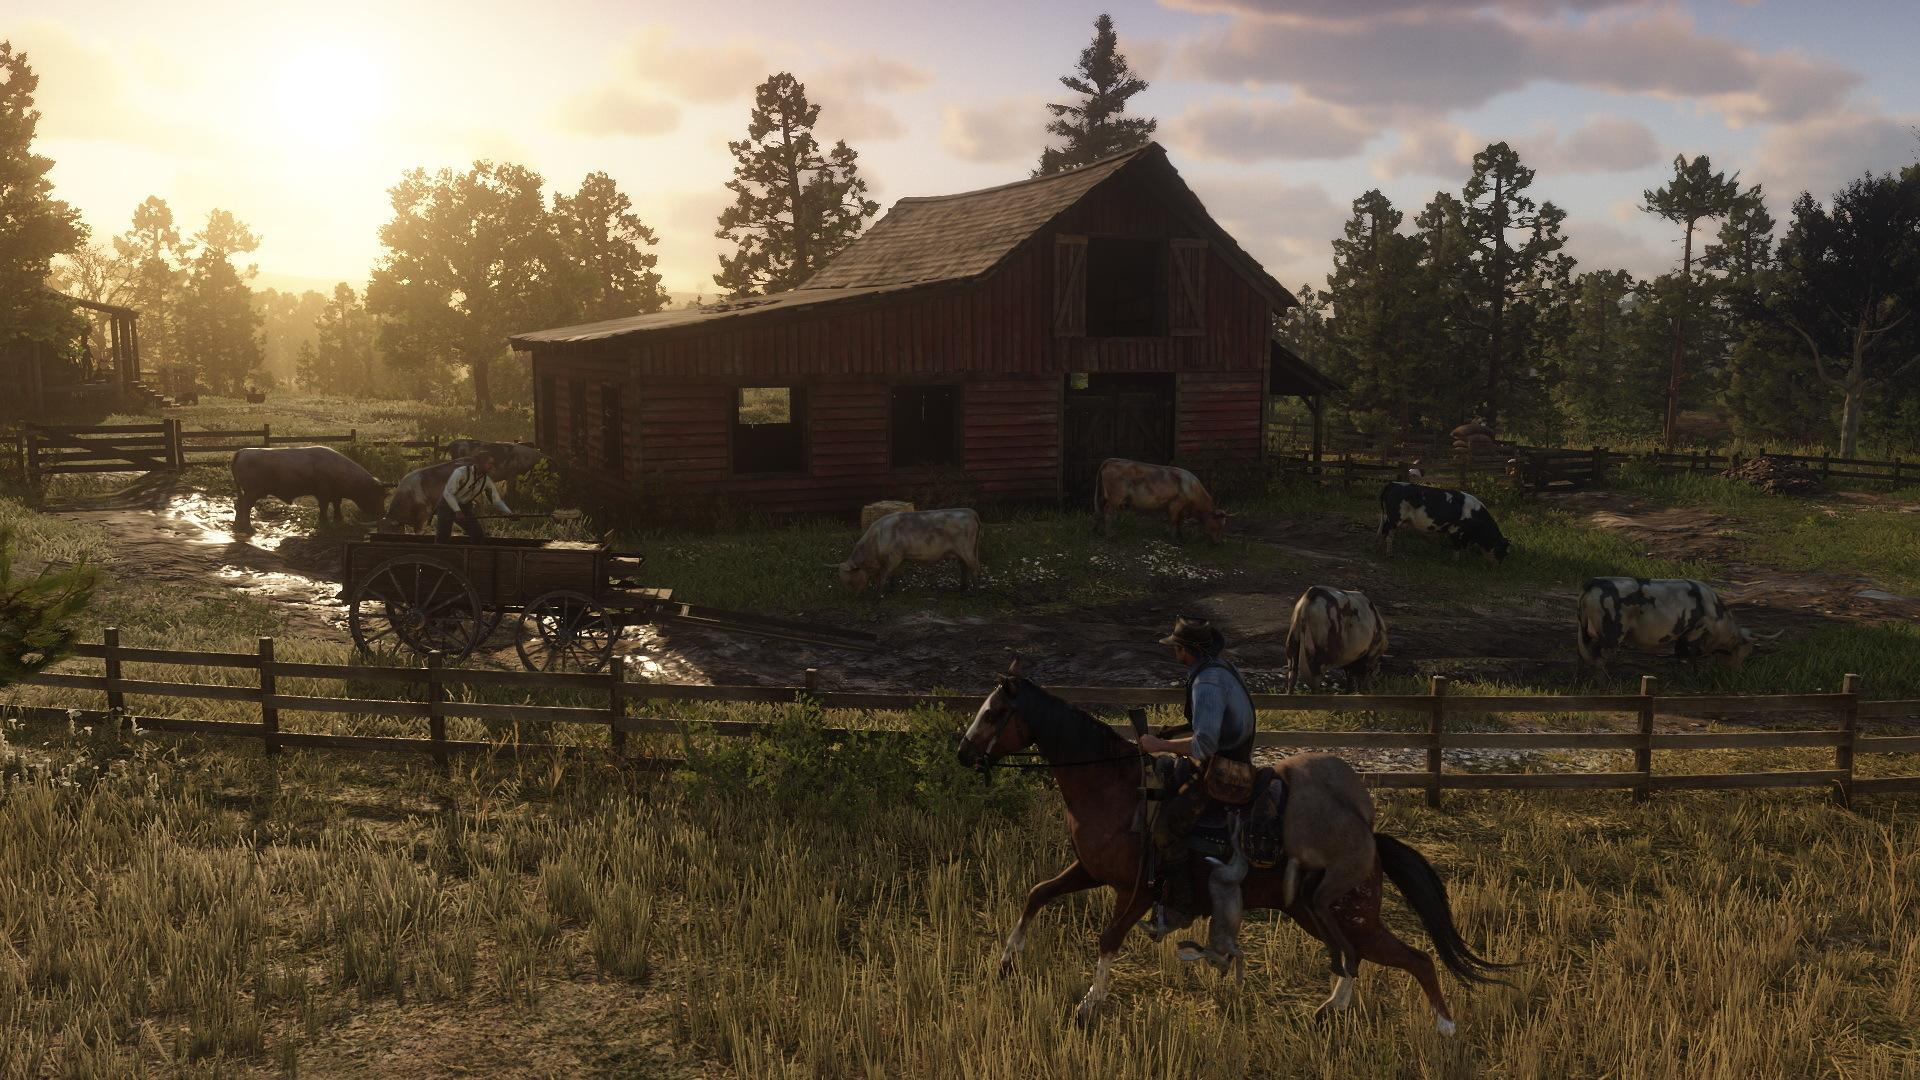 Don't Bet The Farm On Red Dead Redemption 2 - Take-Two ...  Don't Bet T...